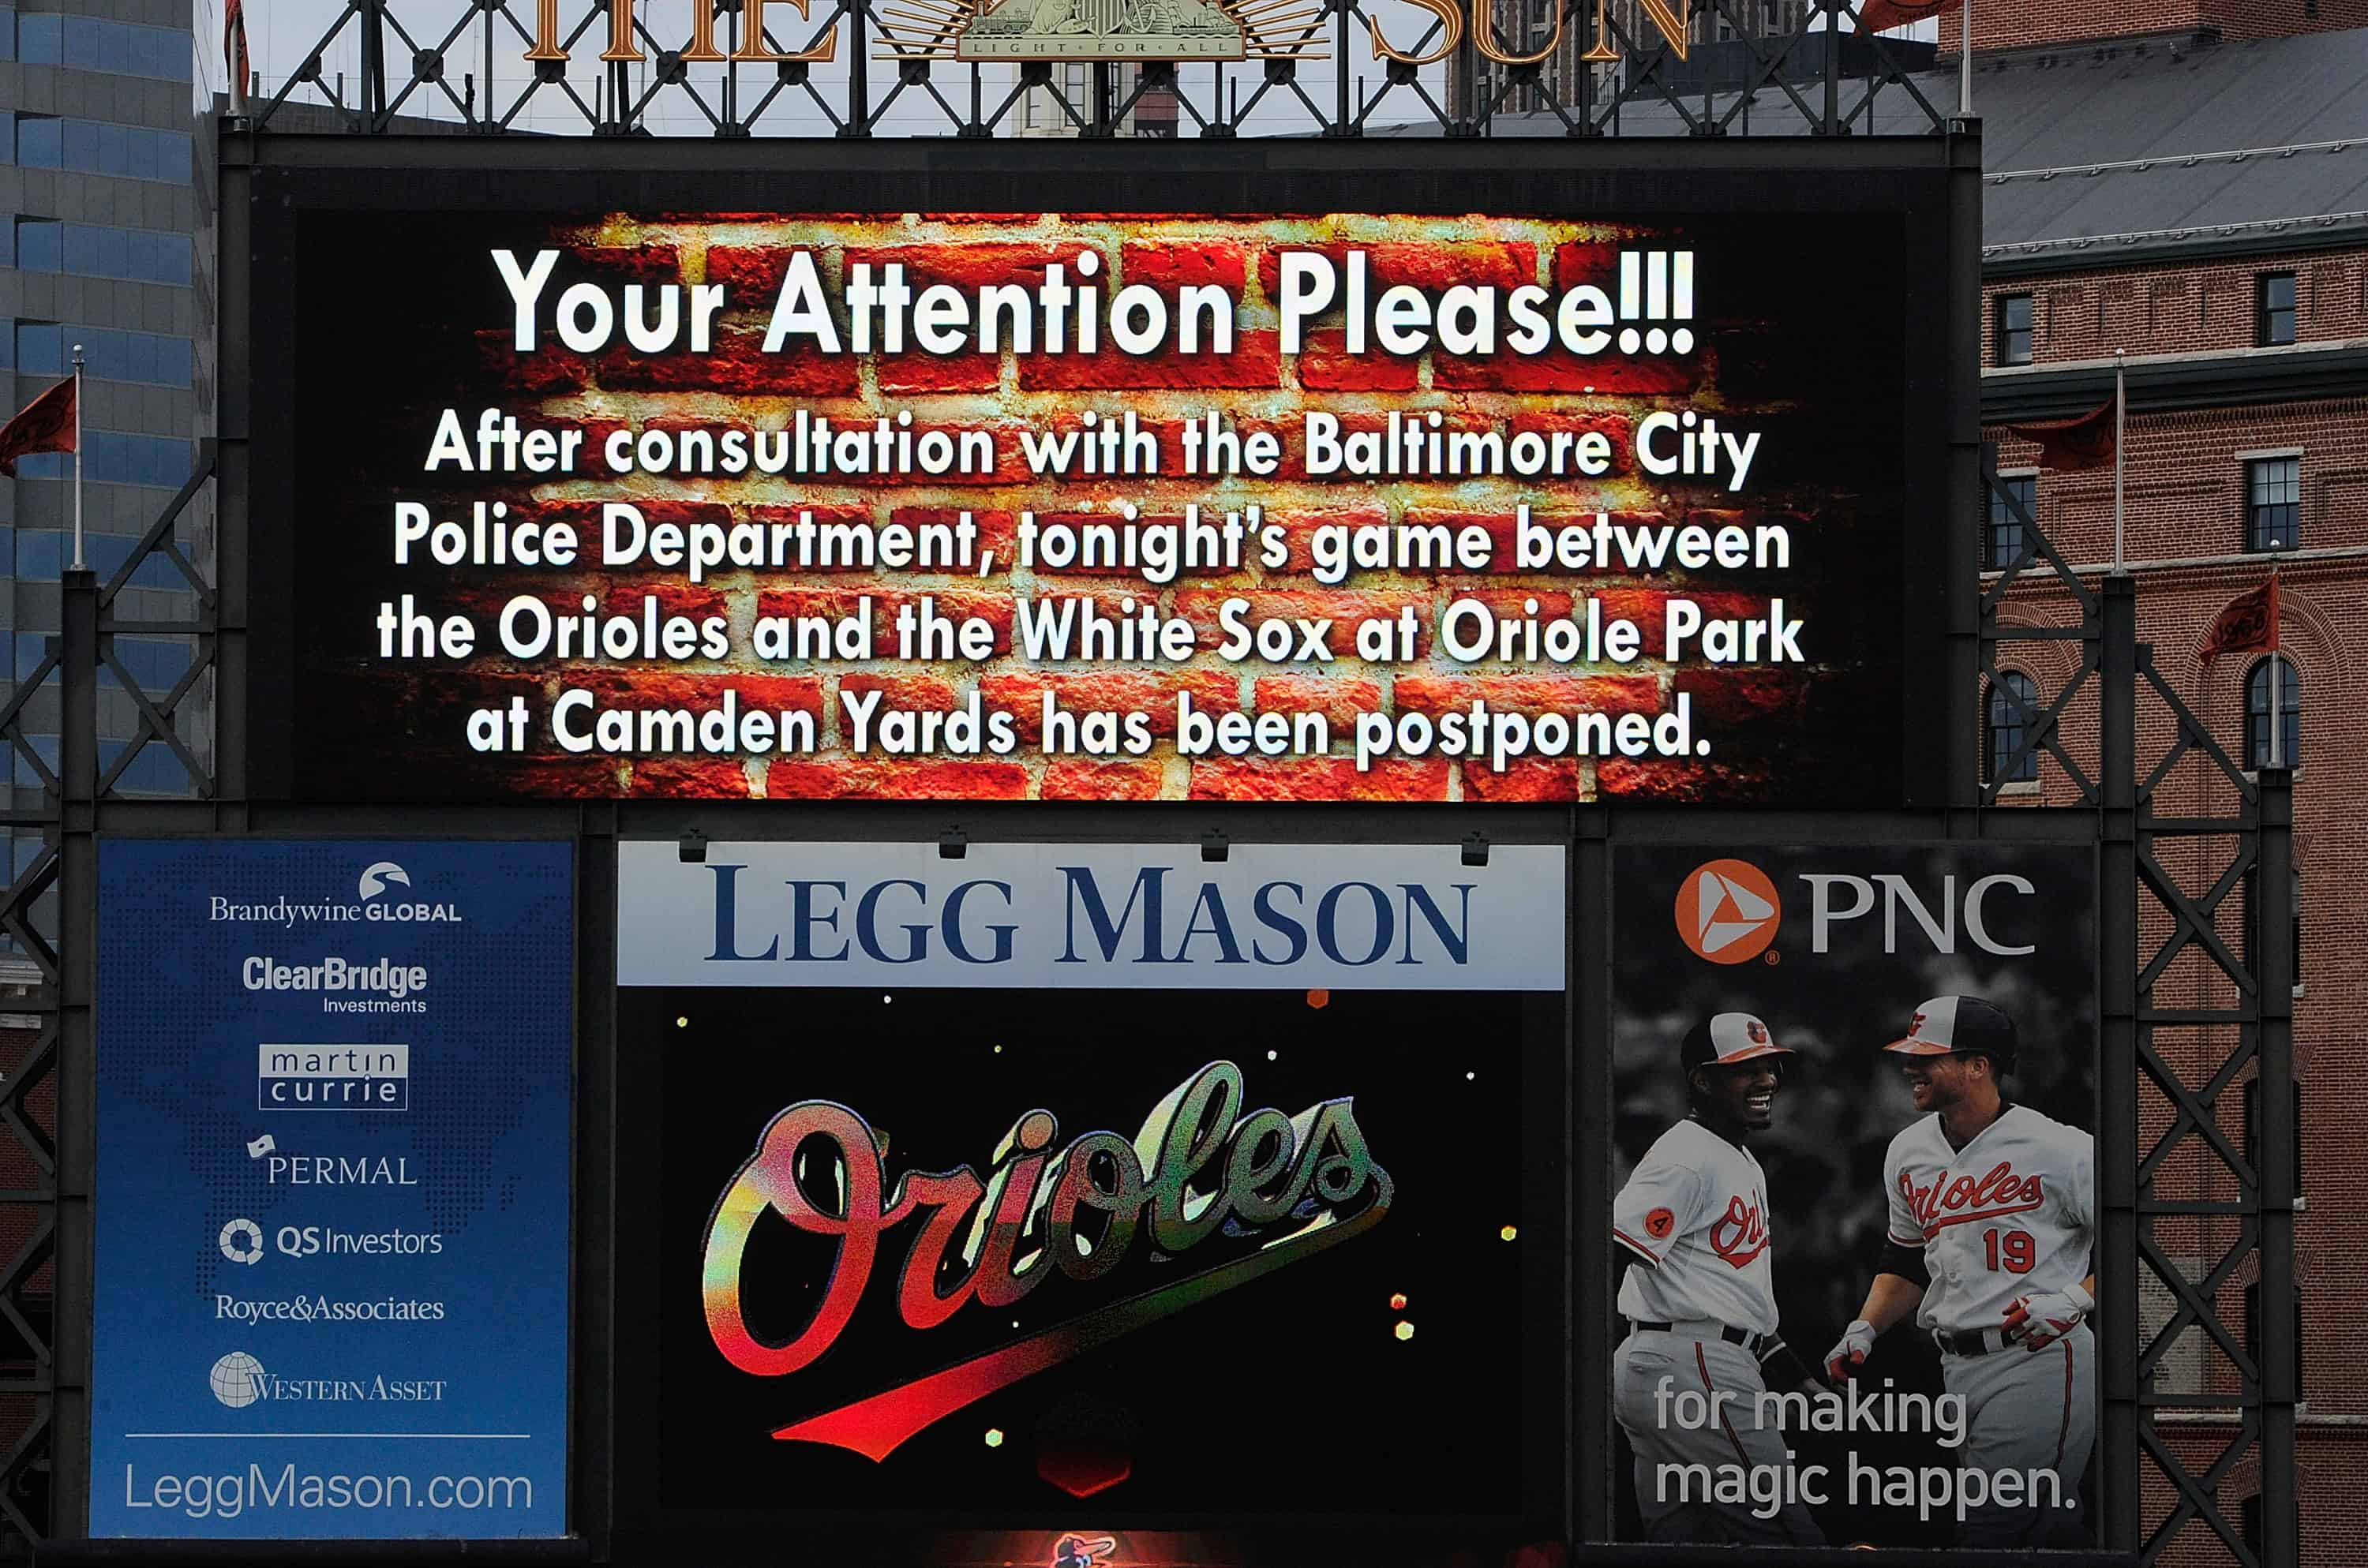 An announcement on the scoreboard notifies fans that the game between the Baltimore Orioles and the Chicago White Sox has been postponed at Oriole Park at Camden Yards.